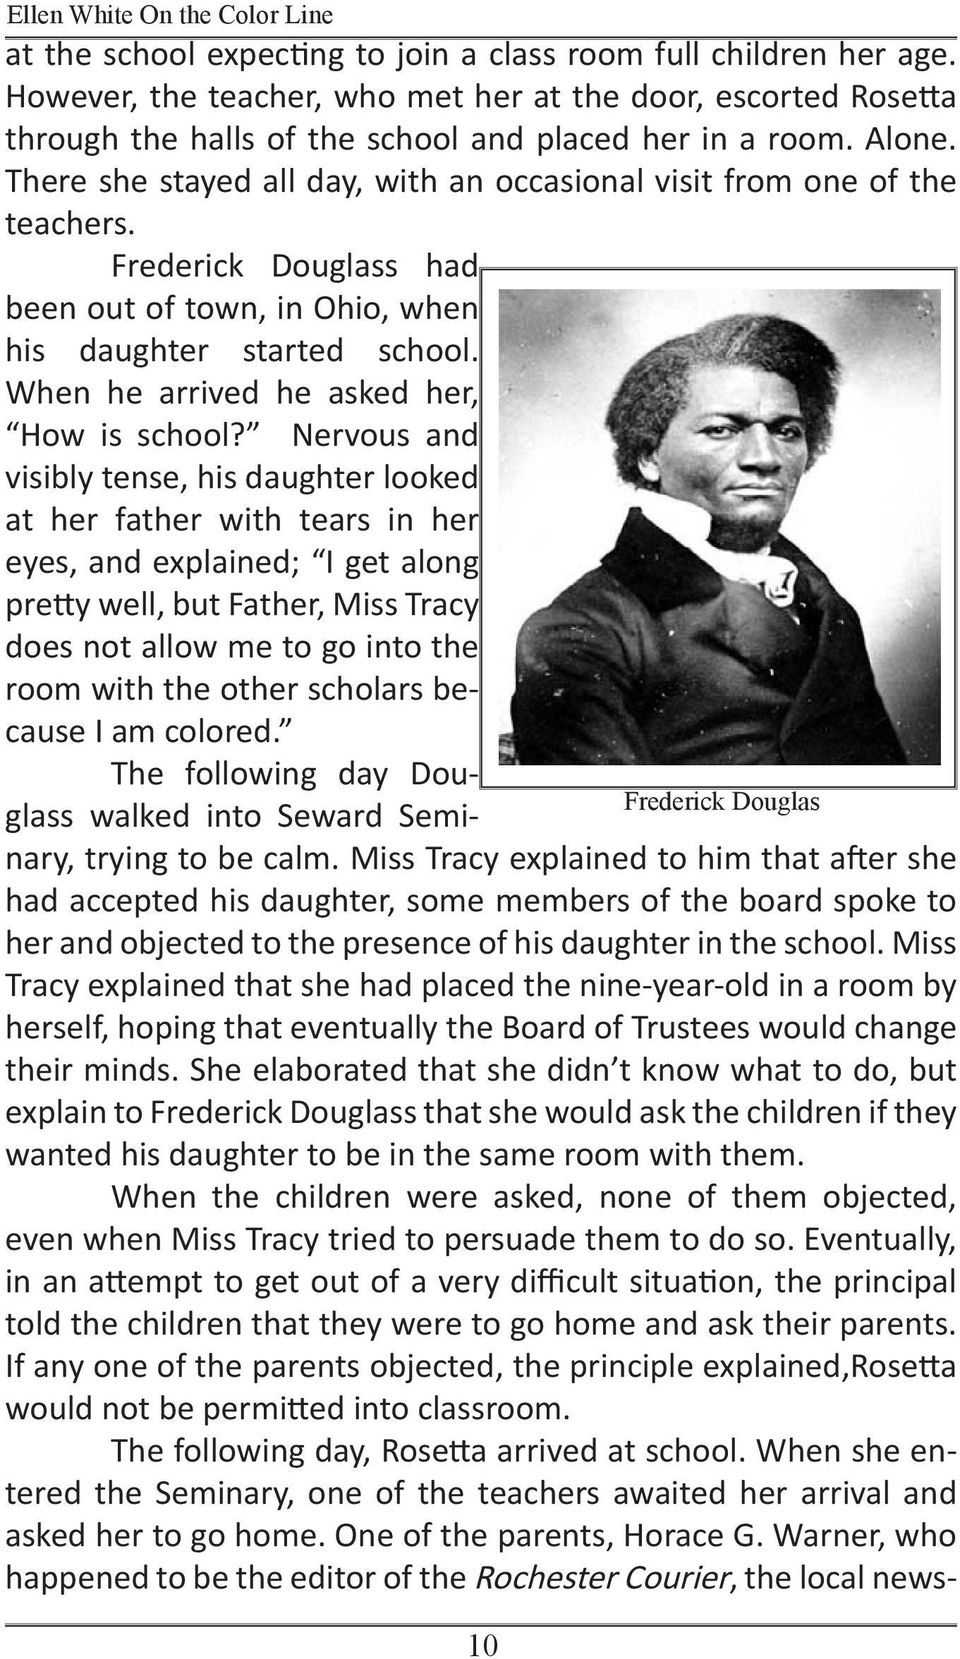 There she stayed all day, with an occasional visit from one of the teachers. Frederick Douglass had been out of town, in Ohio, when his daughter started school.